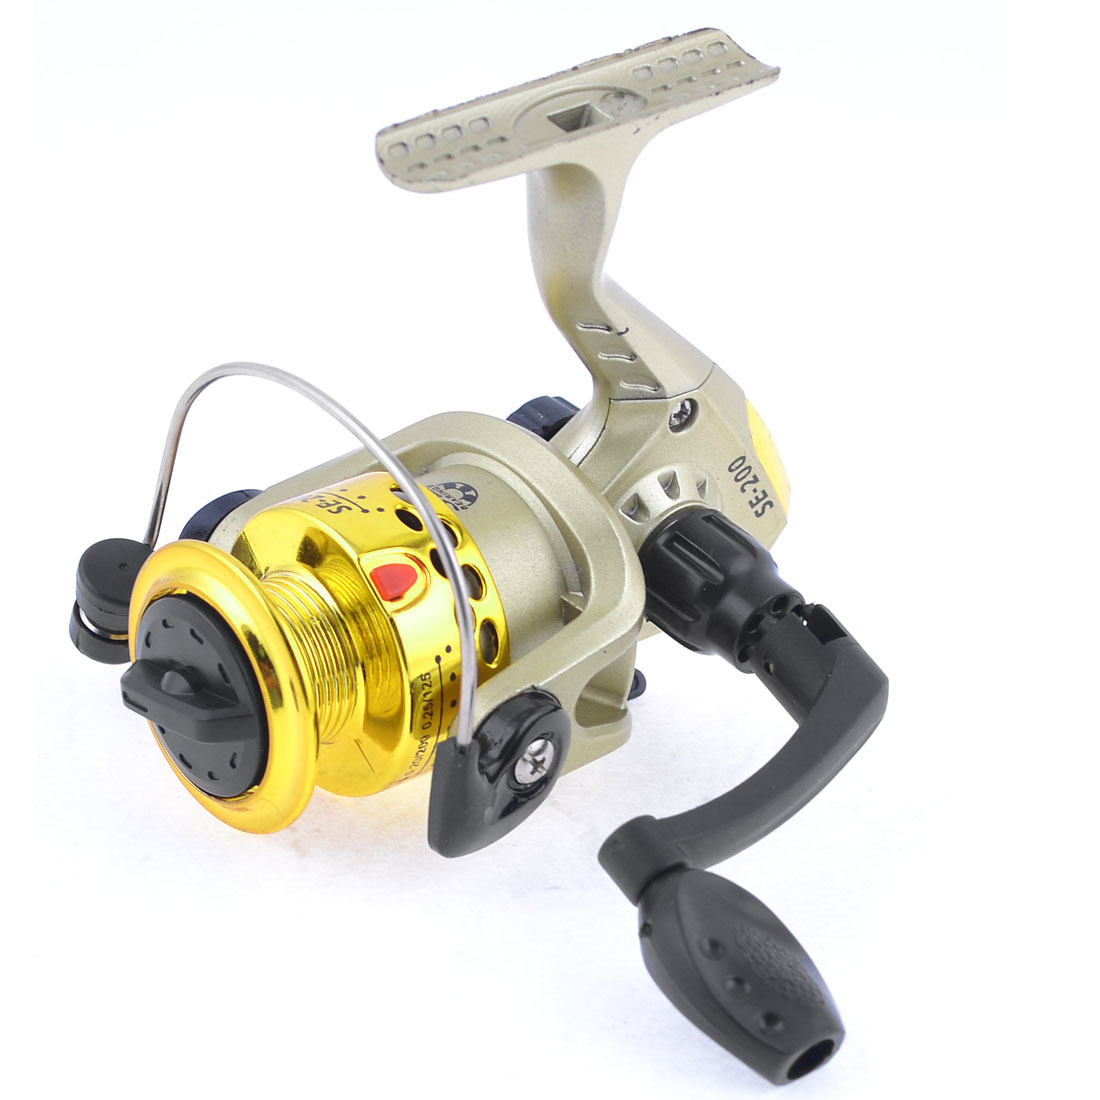 Folding Handgrip Gear Ratio 5.2:1 Angling Spinning Reel Gold Tone Black